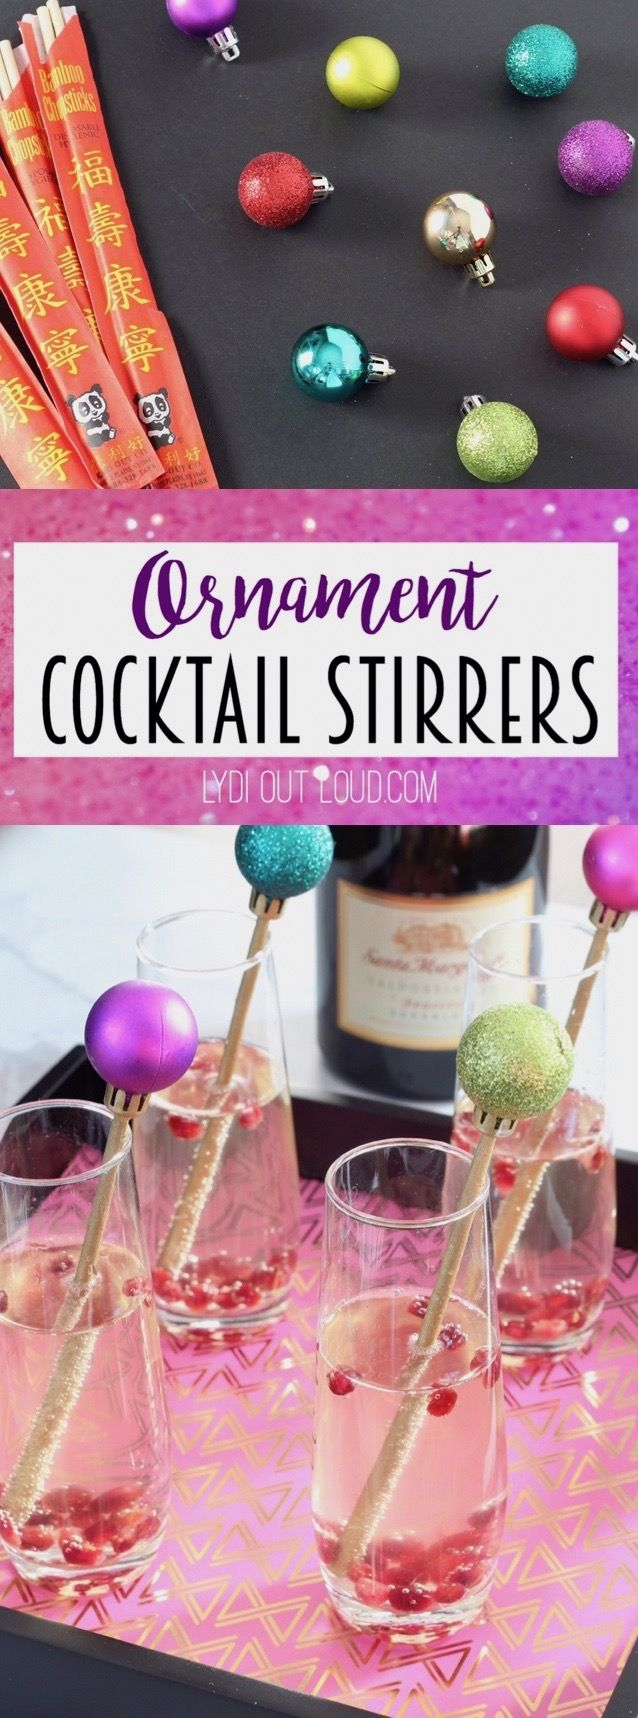 Festive Ornament Cocktail Stirrers - made out of chopsticks!